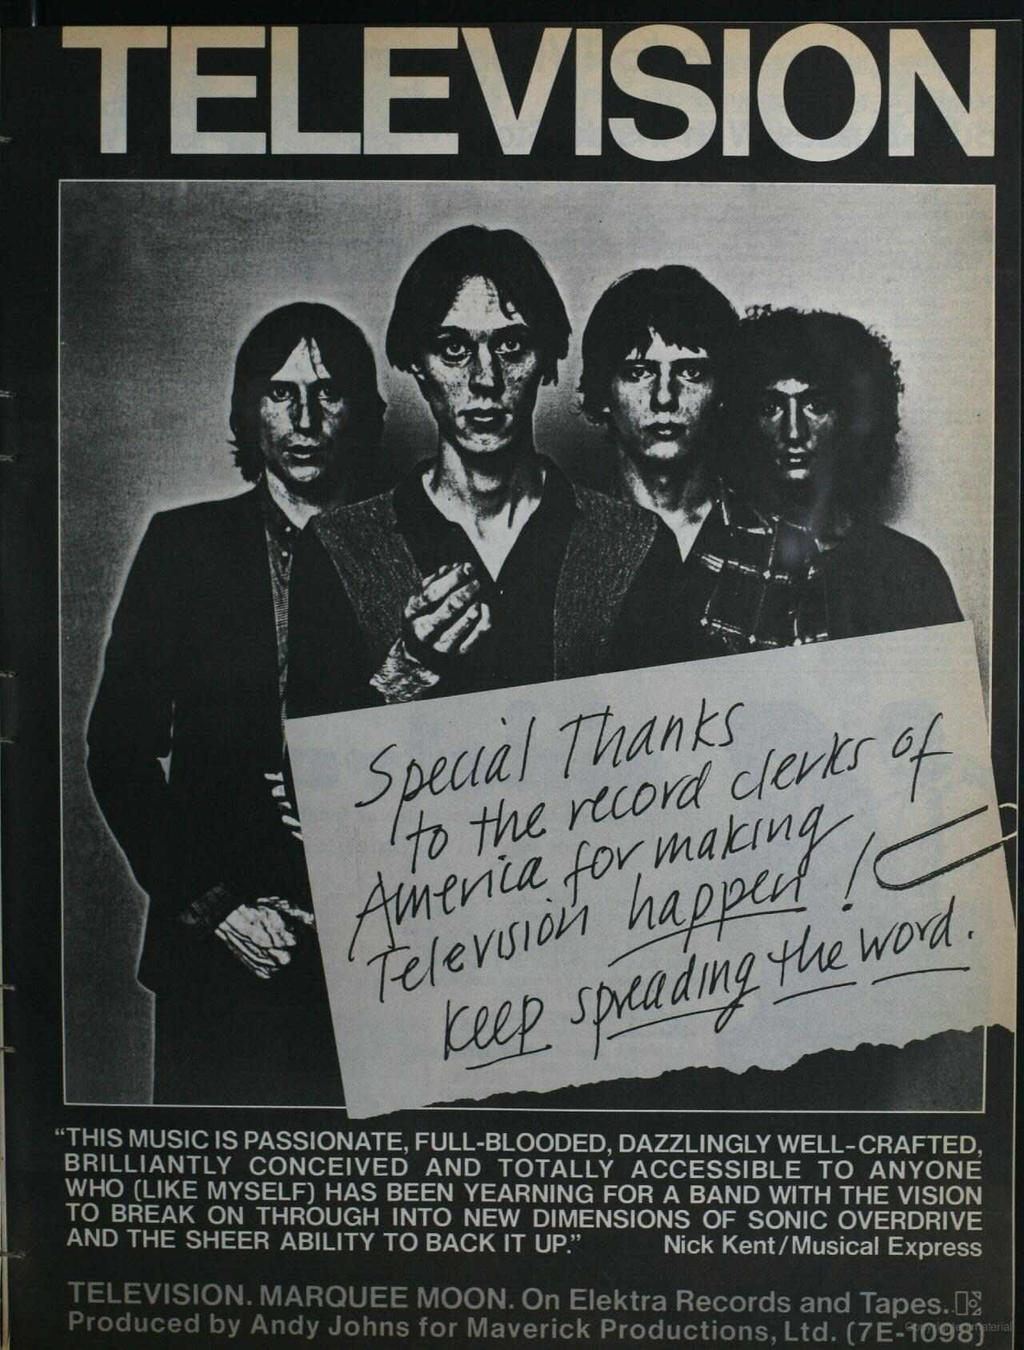 TELEVSON. MARQUEE MOON. On Elektra Records and Tapes. 7.: Produced by Andy Johns for Maverick Productions, Ltd. (7E-098) www.americanradiohistory.